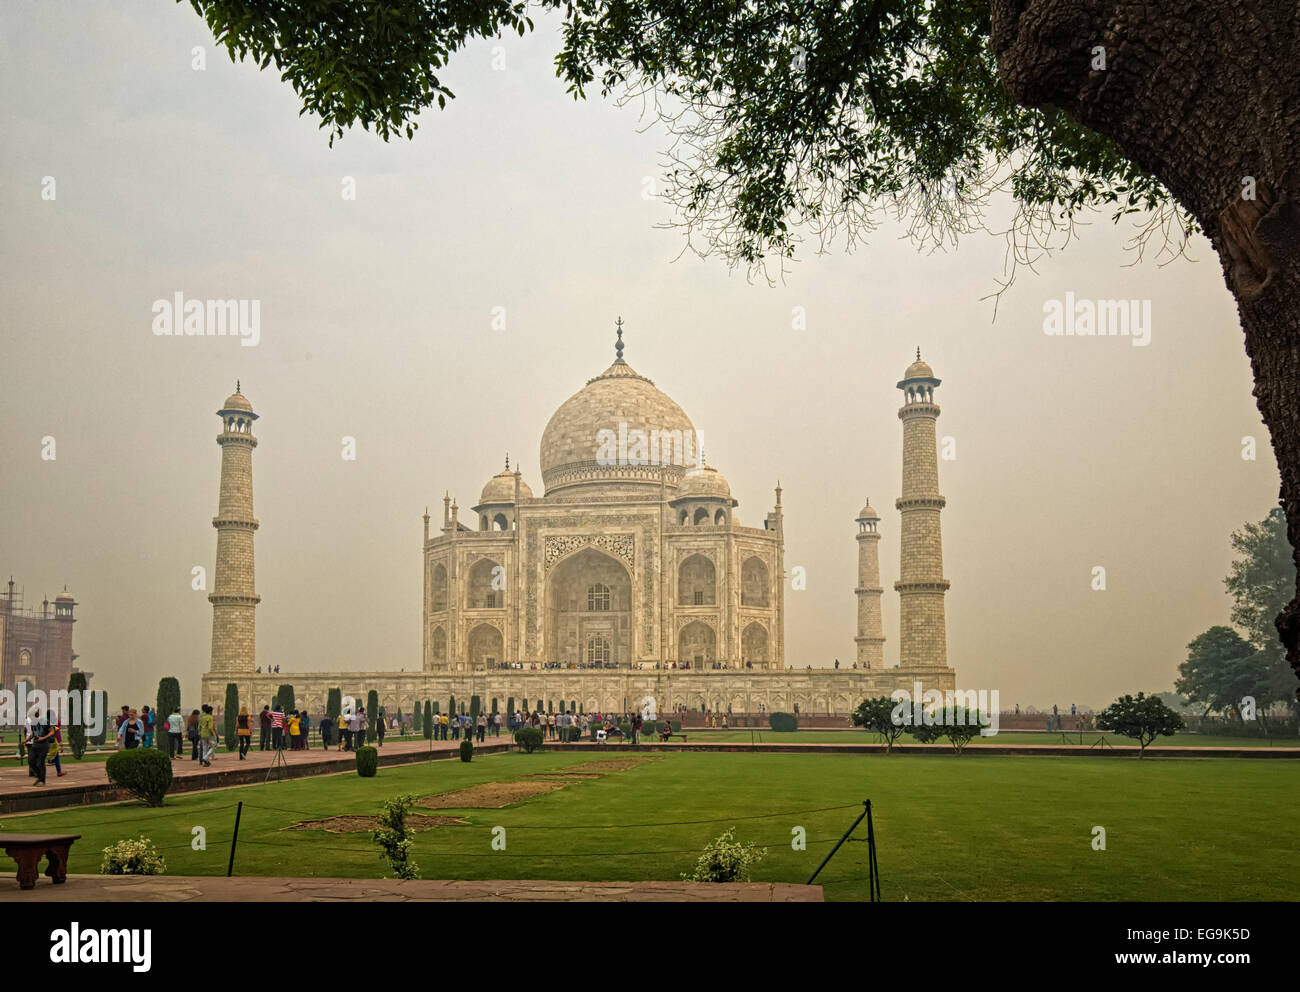 The construction of the Taj Mahal began in 1632 and was completed in 1653 - Stock Image